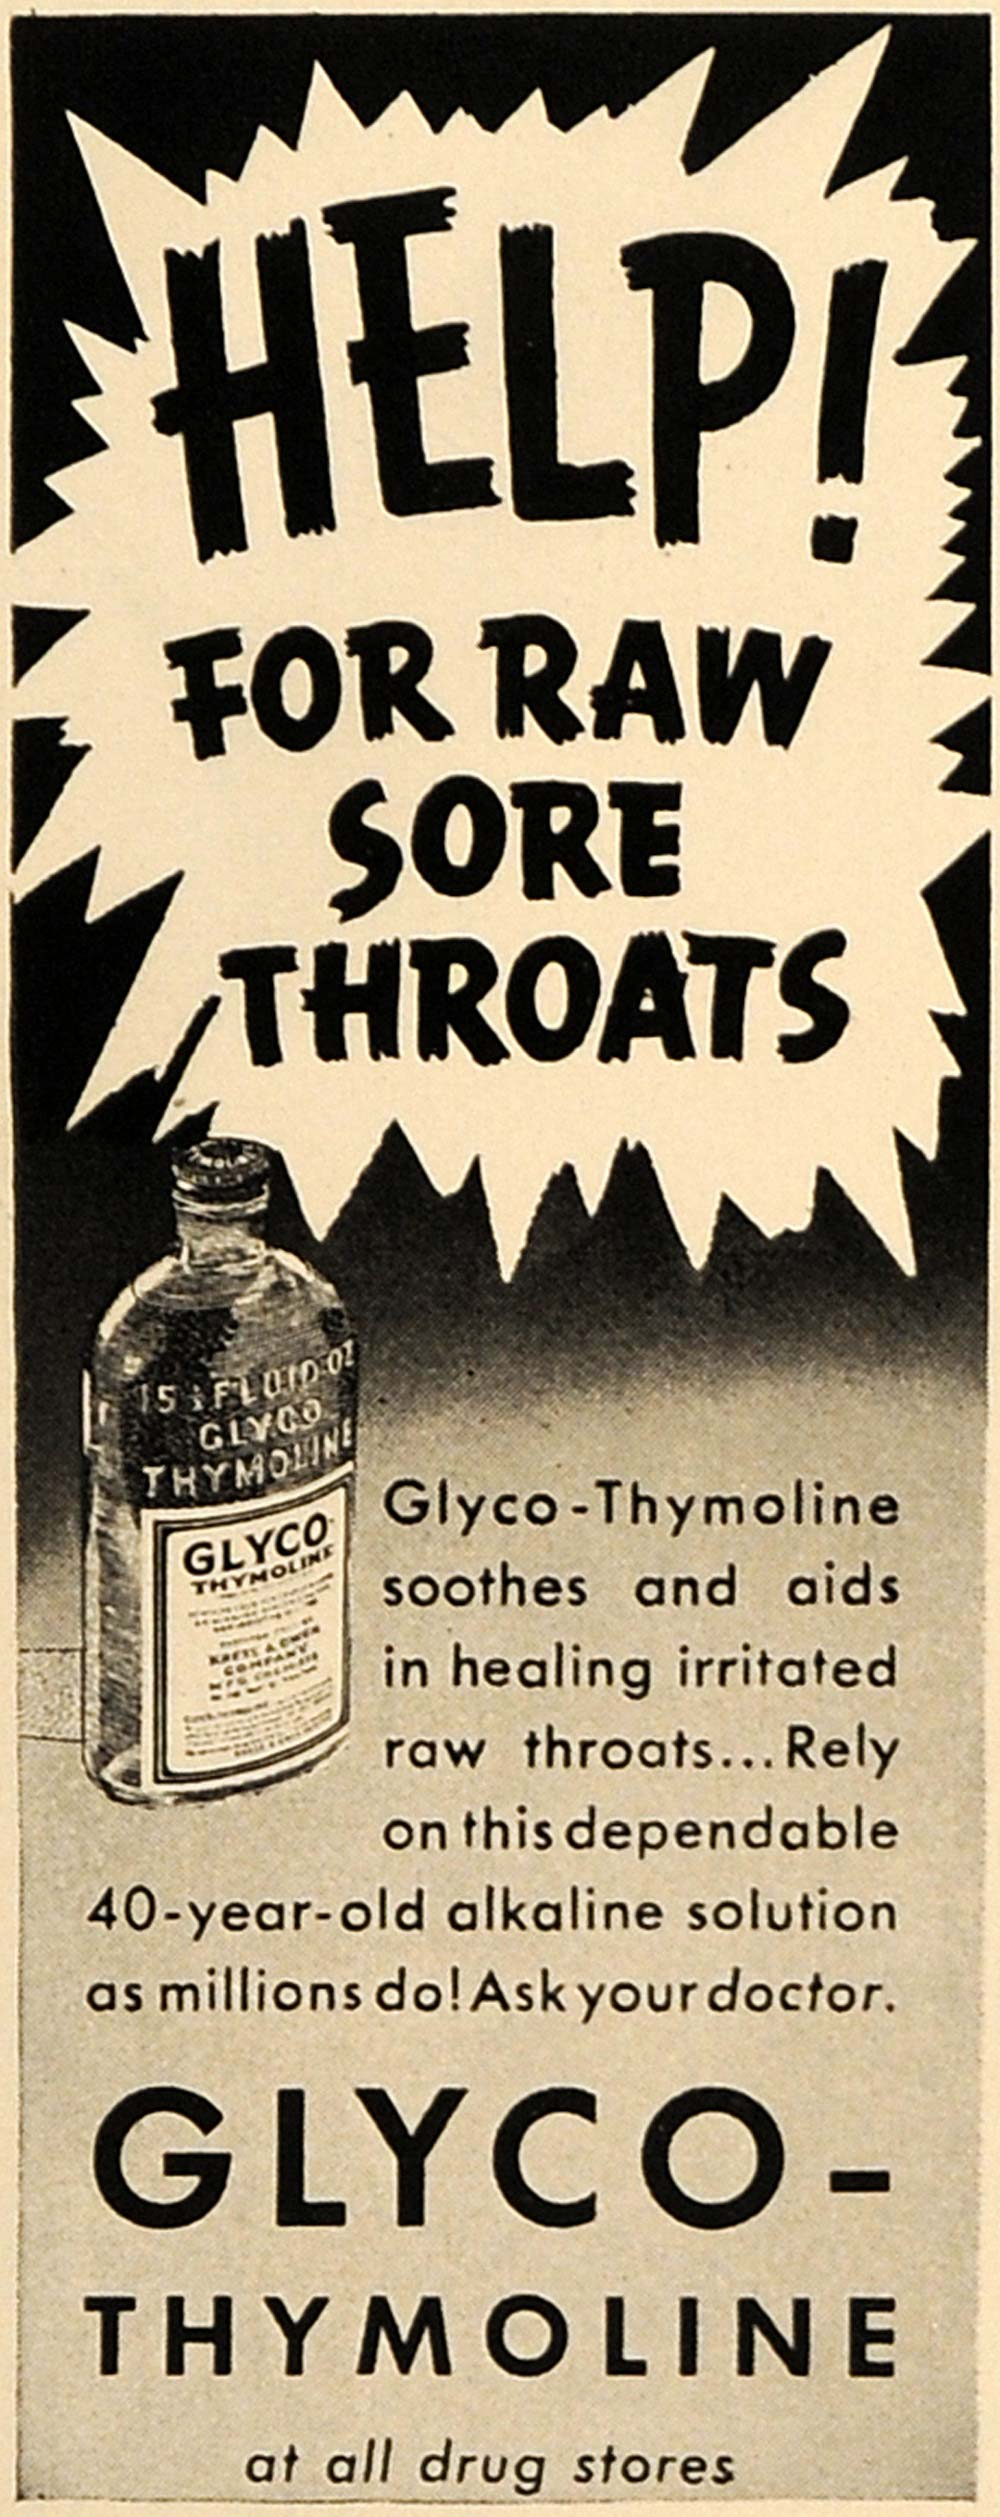 1938 Ad Glyco-Thymoline Sore Throats Relievers Remedy - ORIGINAL ESQ1